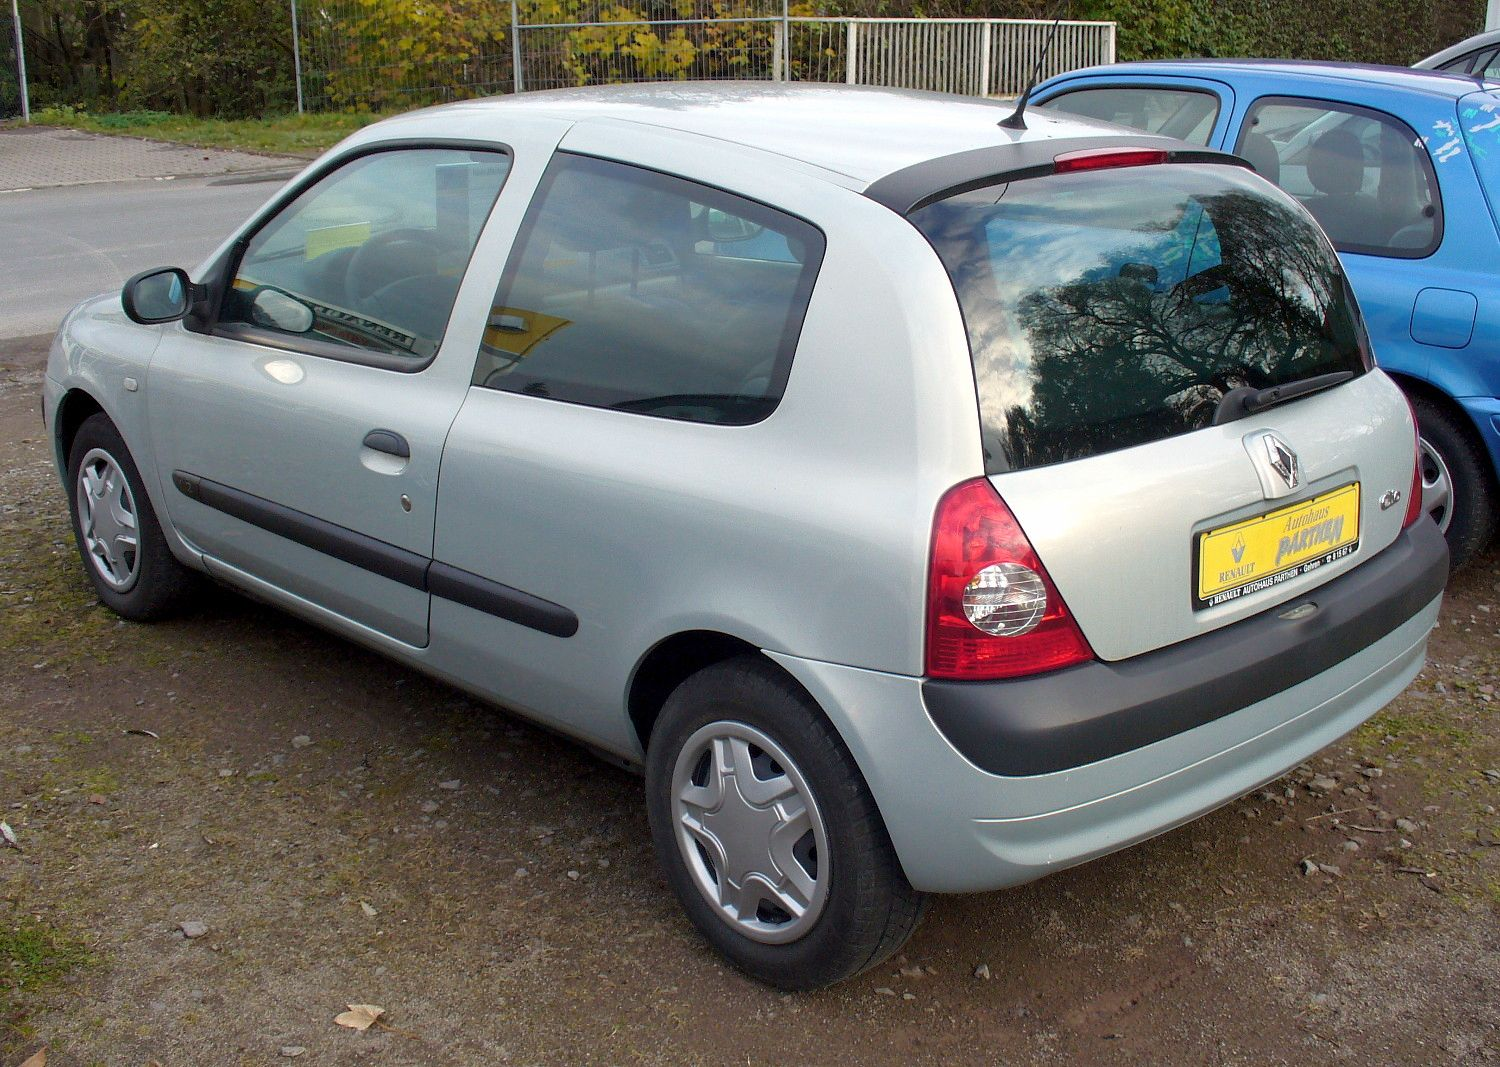 renault clio 1.2 authentique-pic. 2